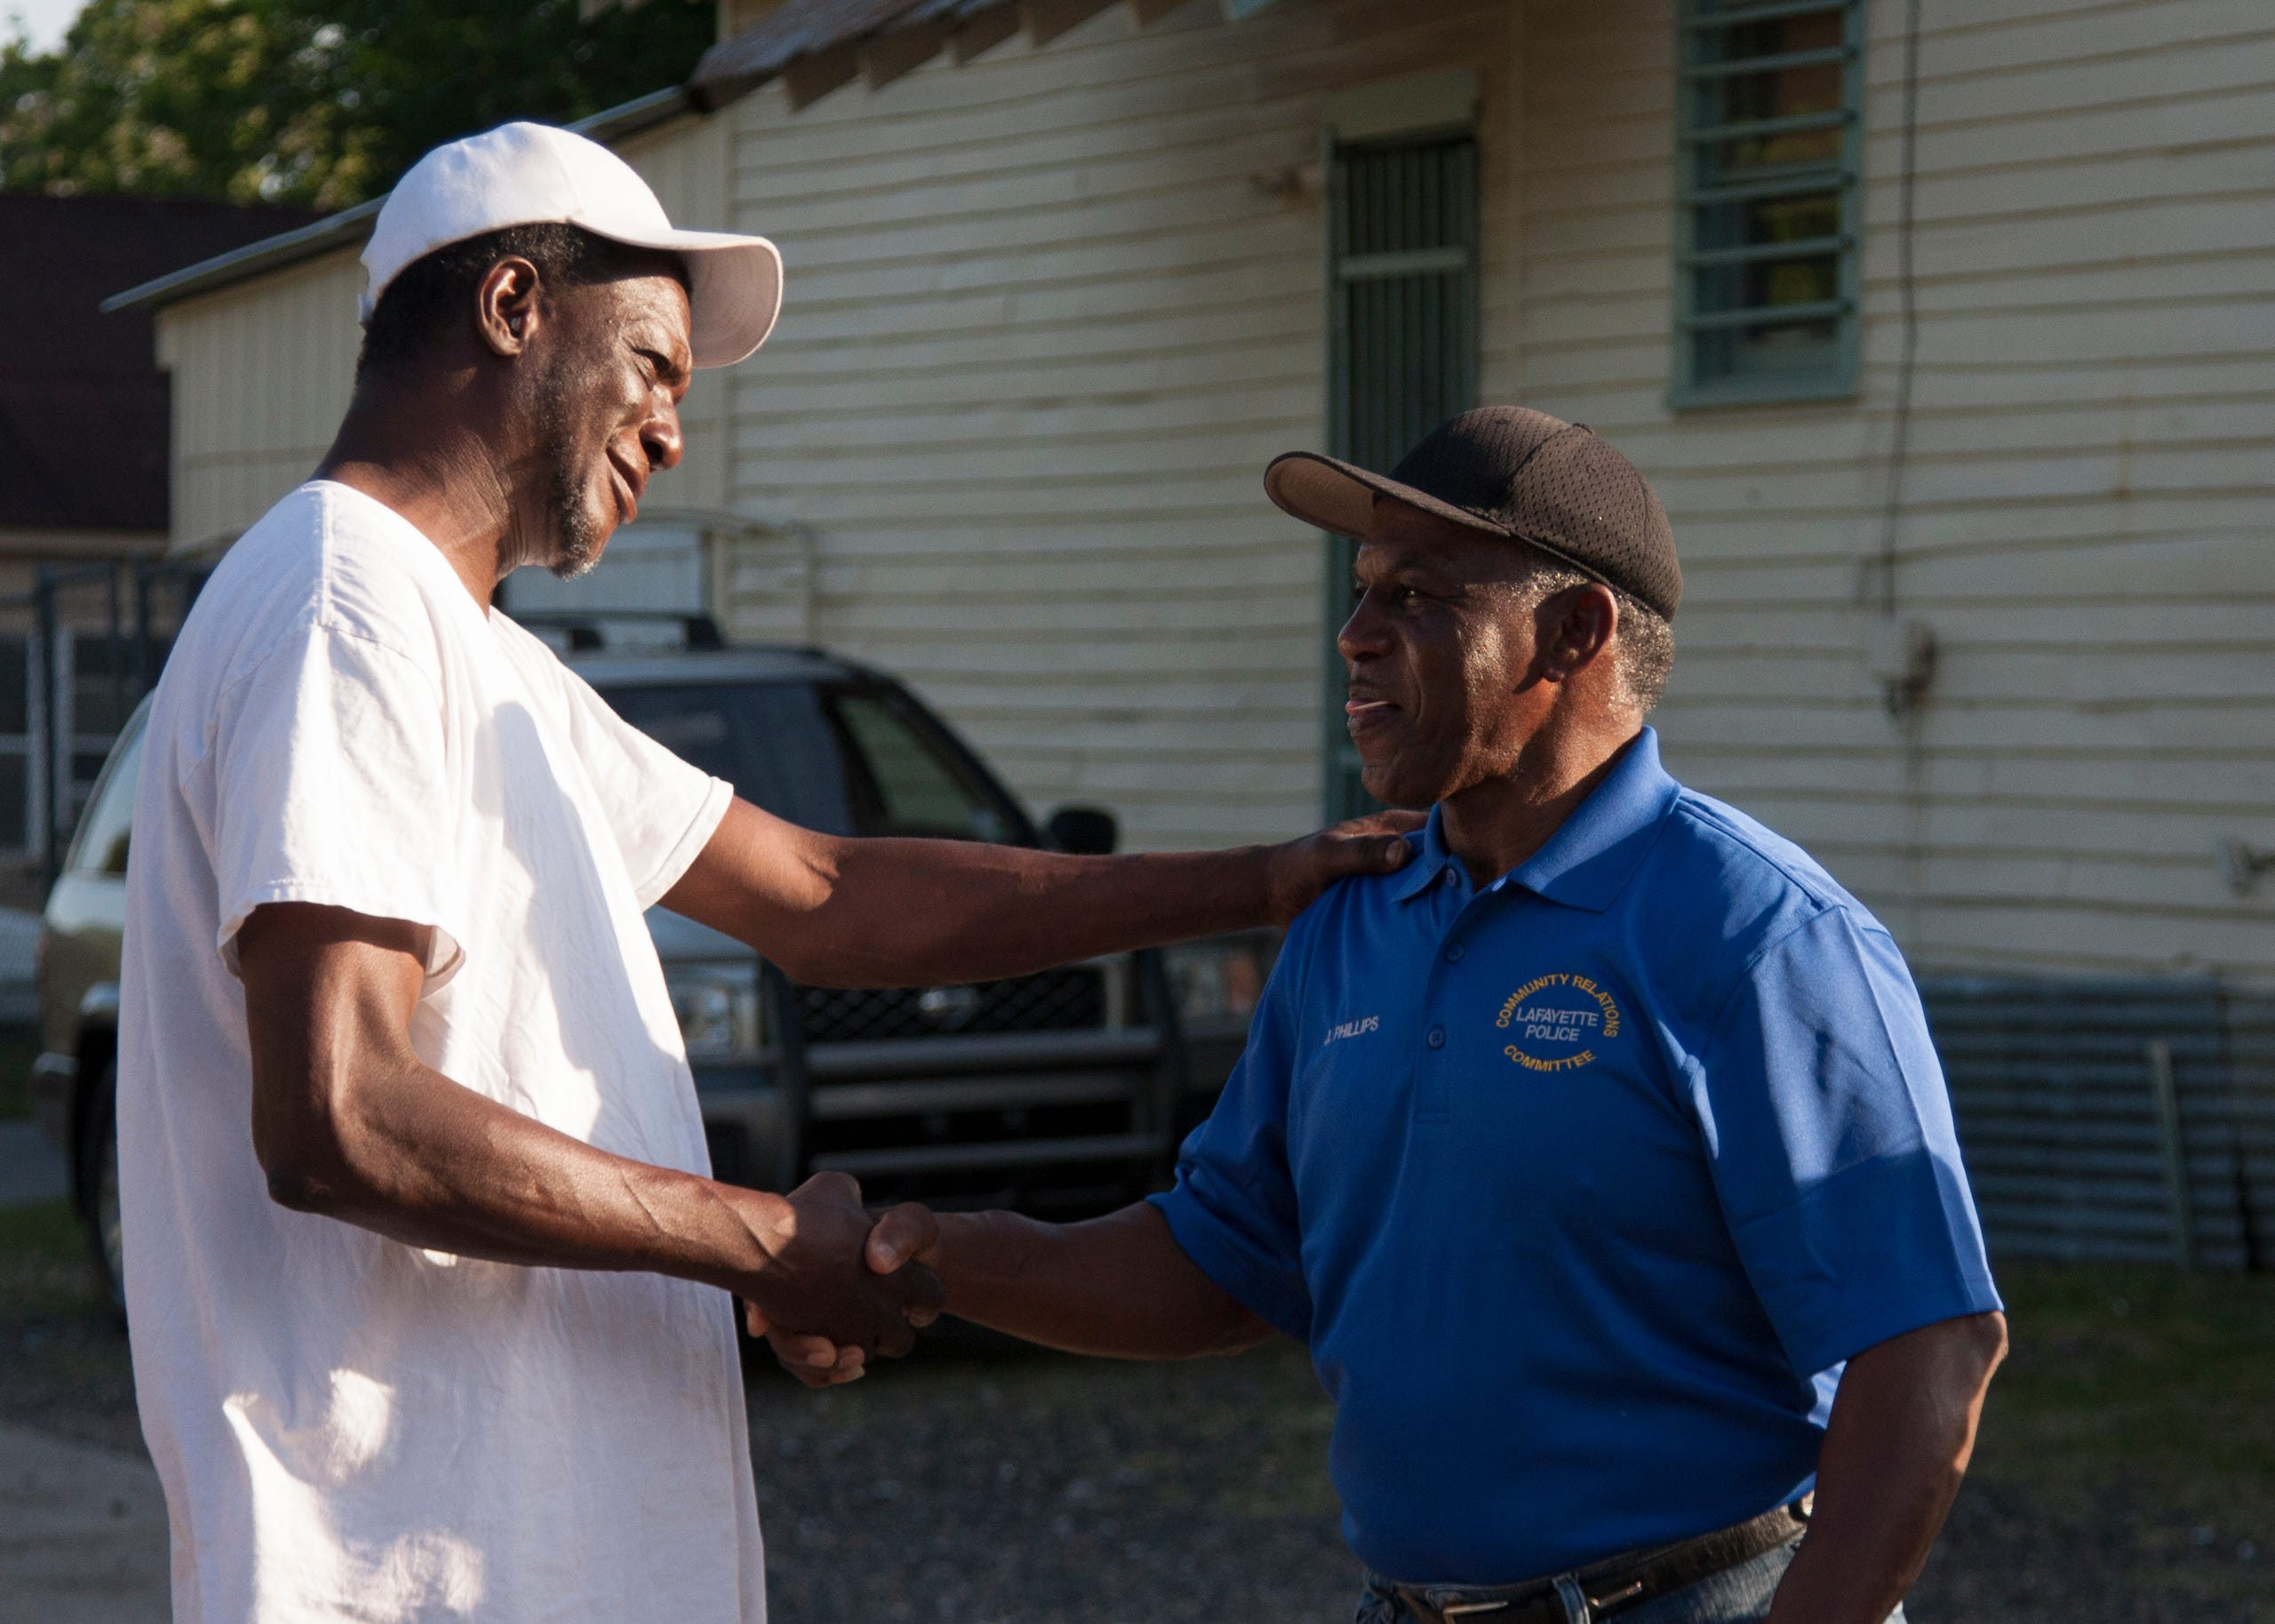 Lafayette Police reaches out to McComb-Veazey residents